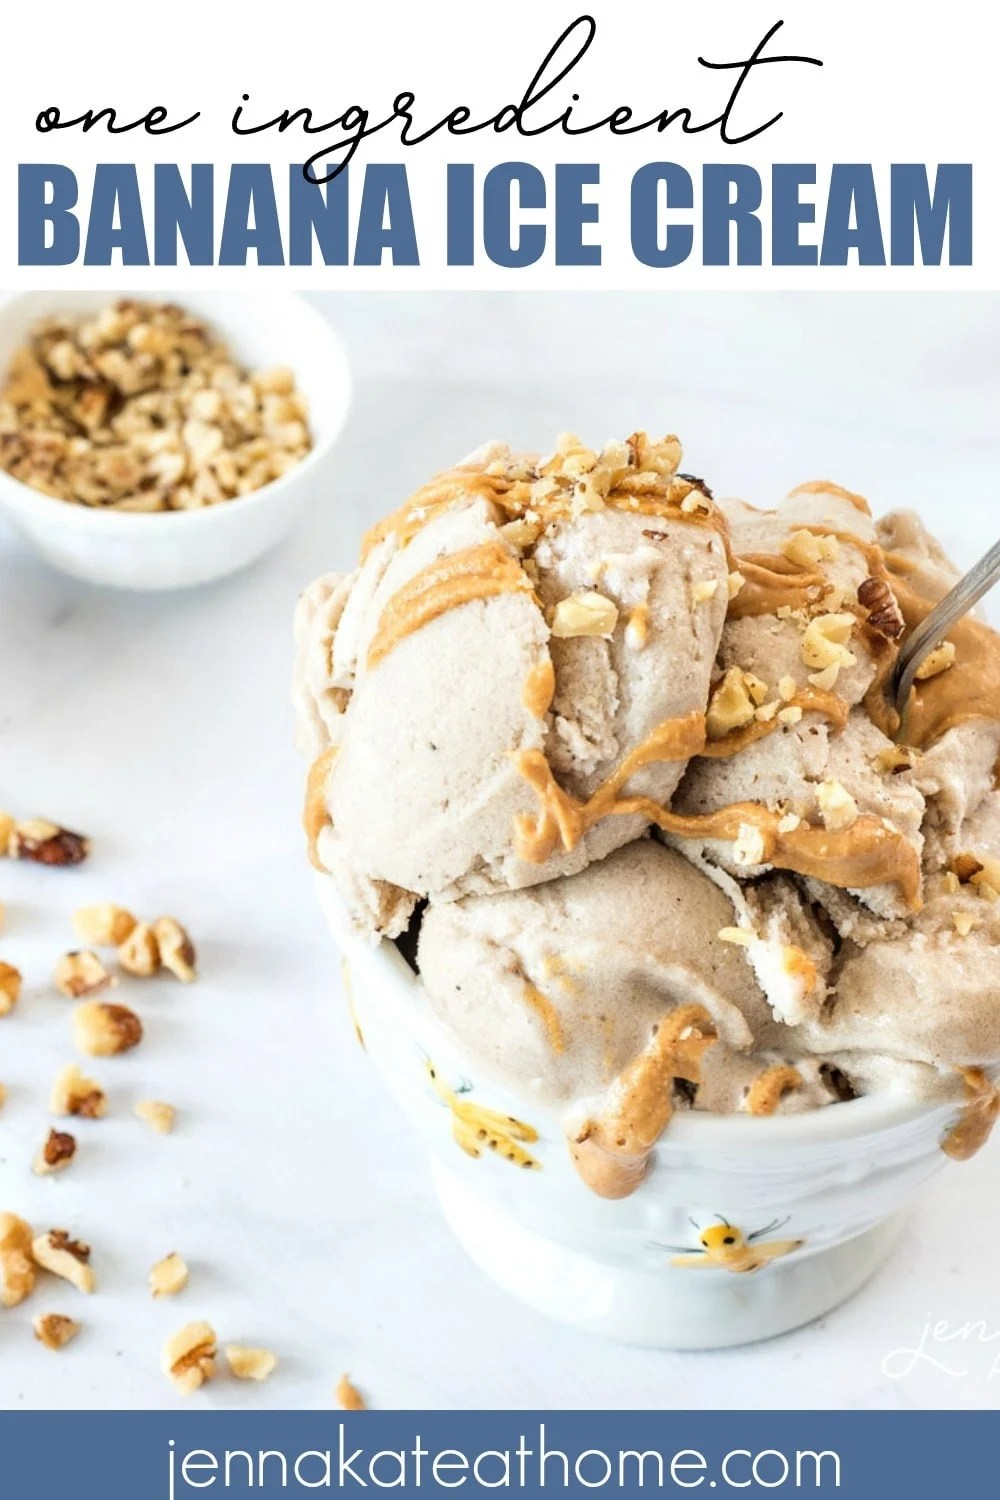 """This healthy banana """"ice cream"""" is made with only 1 ingredient - bananas! But adding chocolate chips and peanut butter turns it into a decadent treat that you don't need to feel guilty about!"""